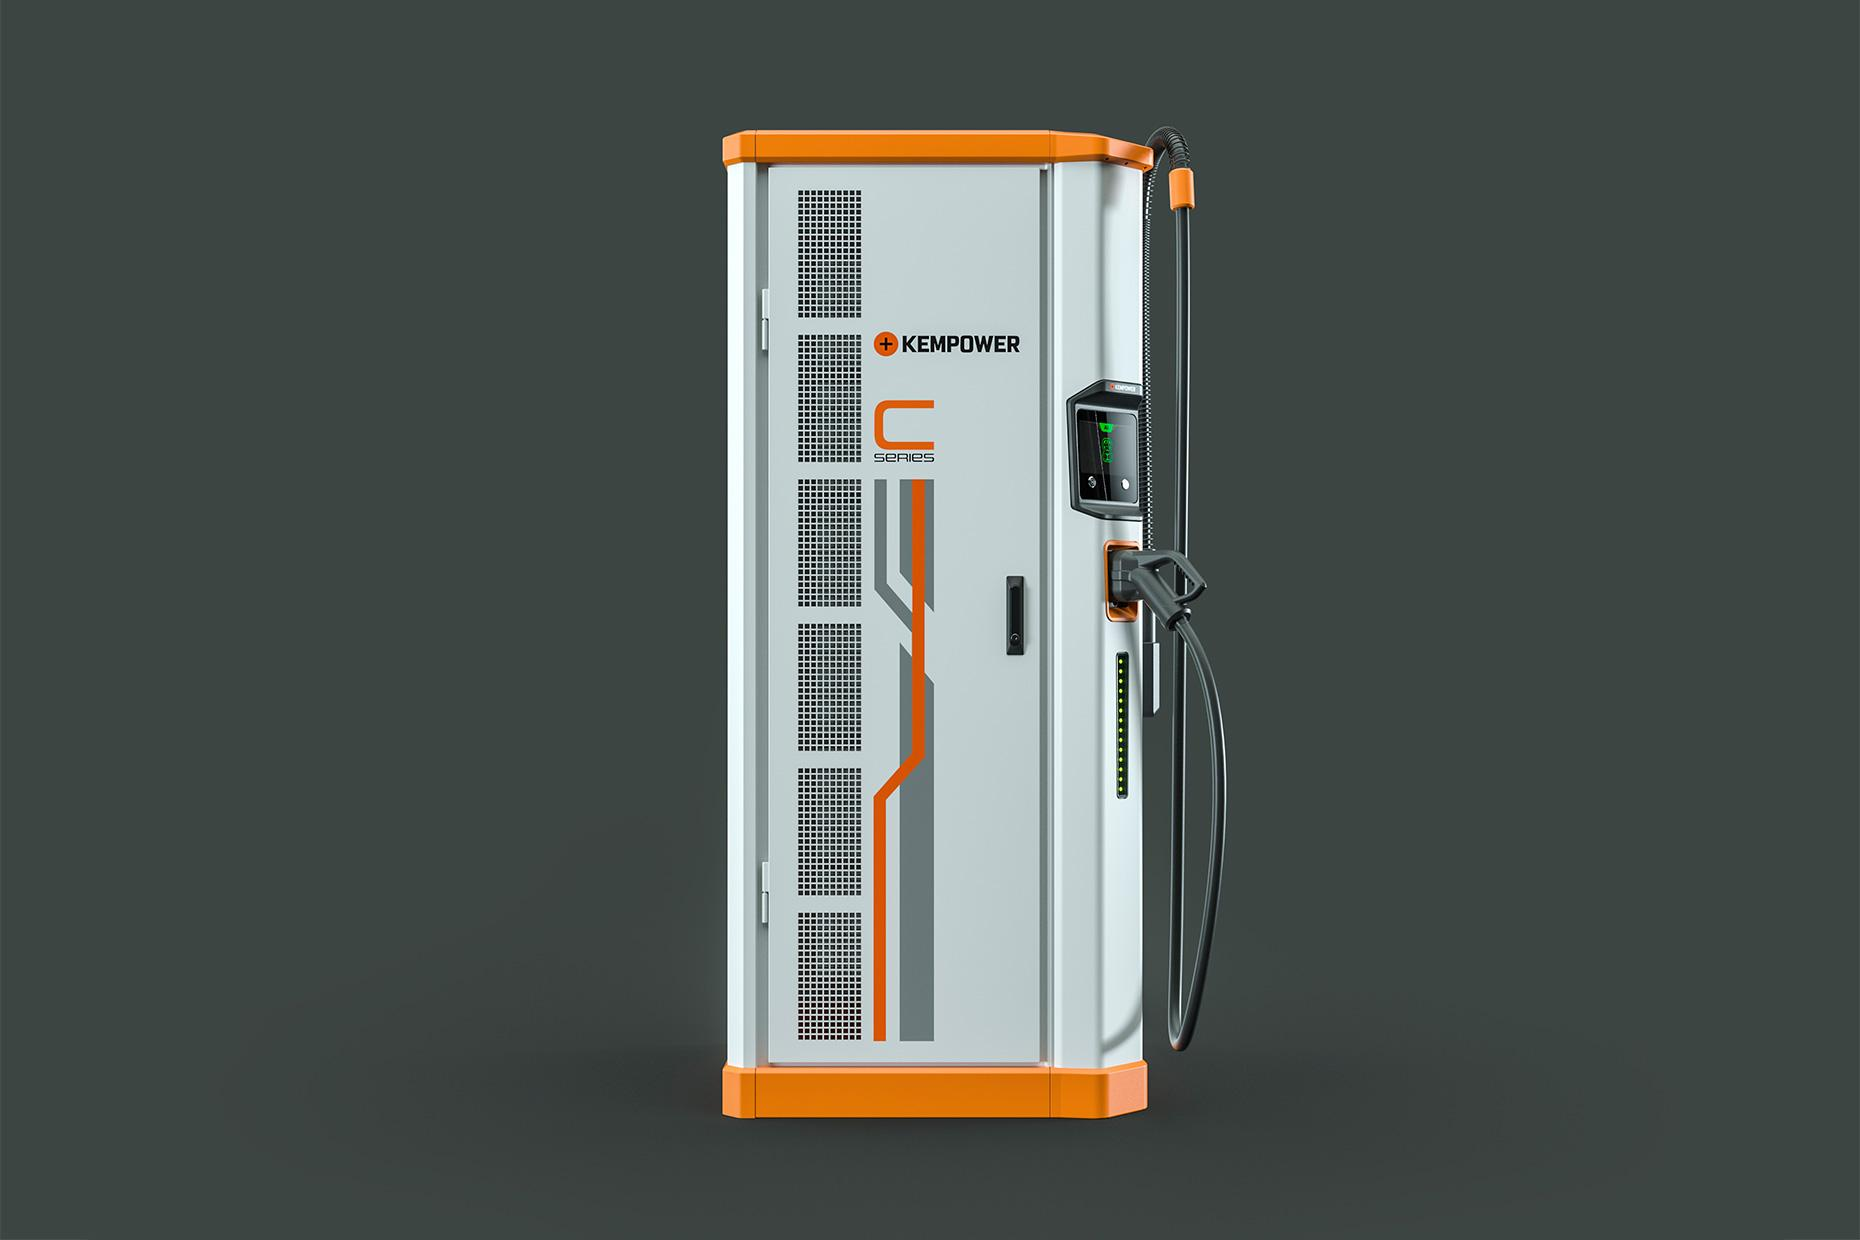 Kempower C-Series Fast-charging station for electric fleets, electric marine, and electric off-highway vehicles.